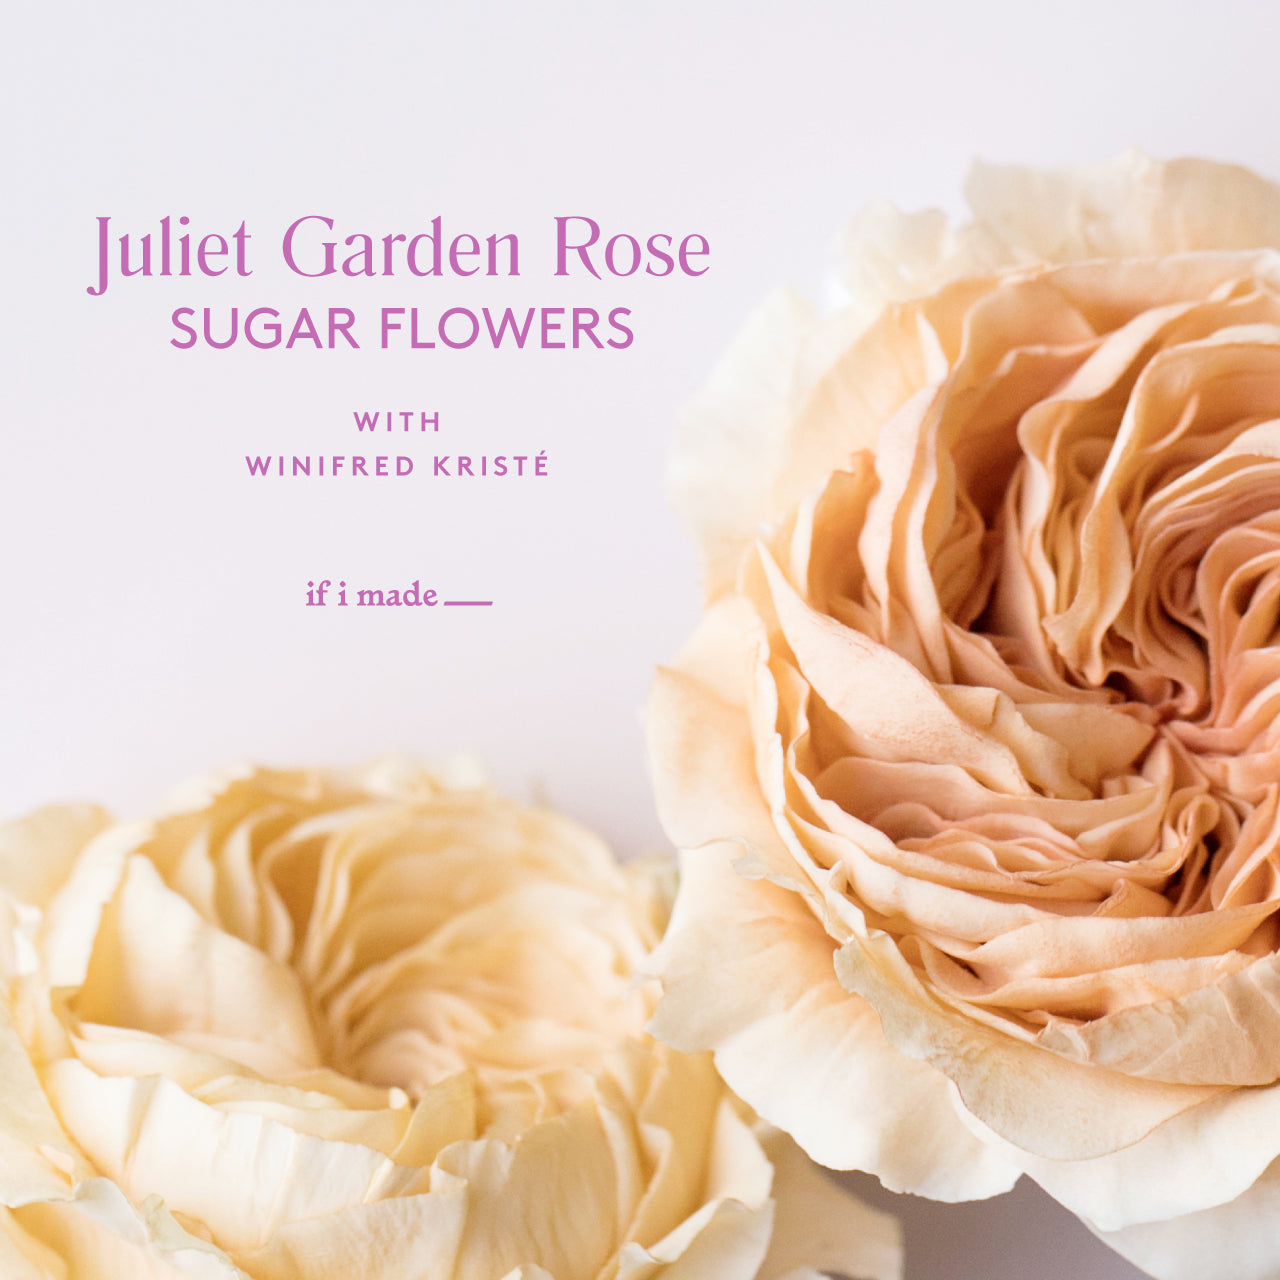 Sale Payment Plan: Juliet Garden Rose with Winifred Kristé Cake